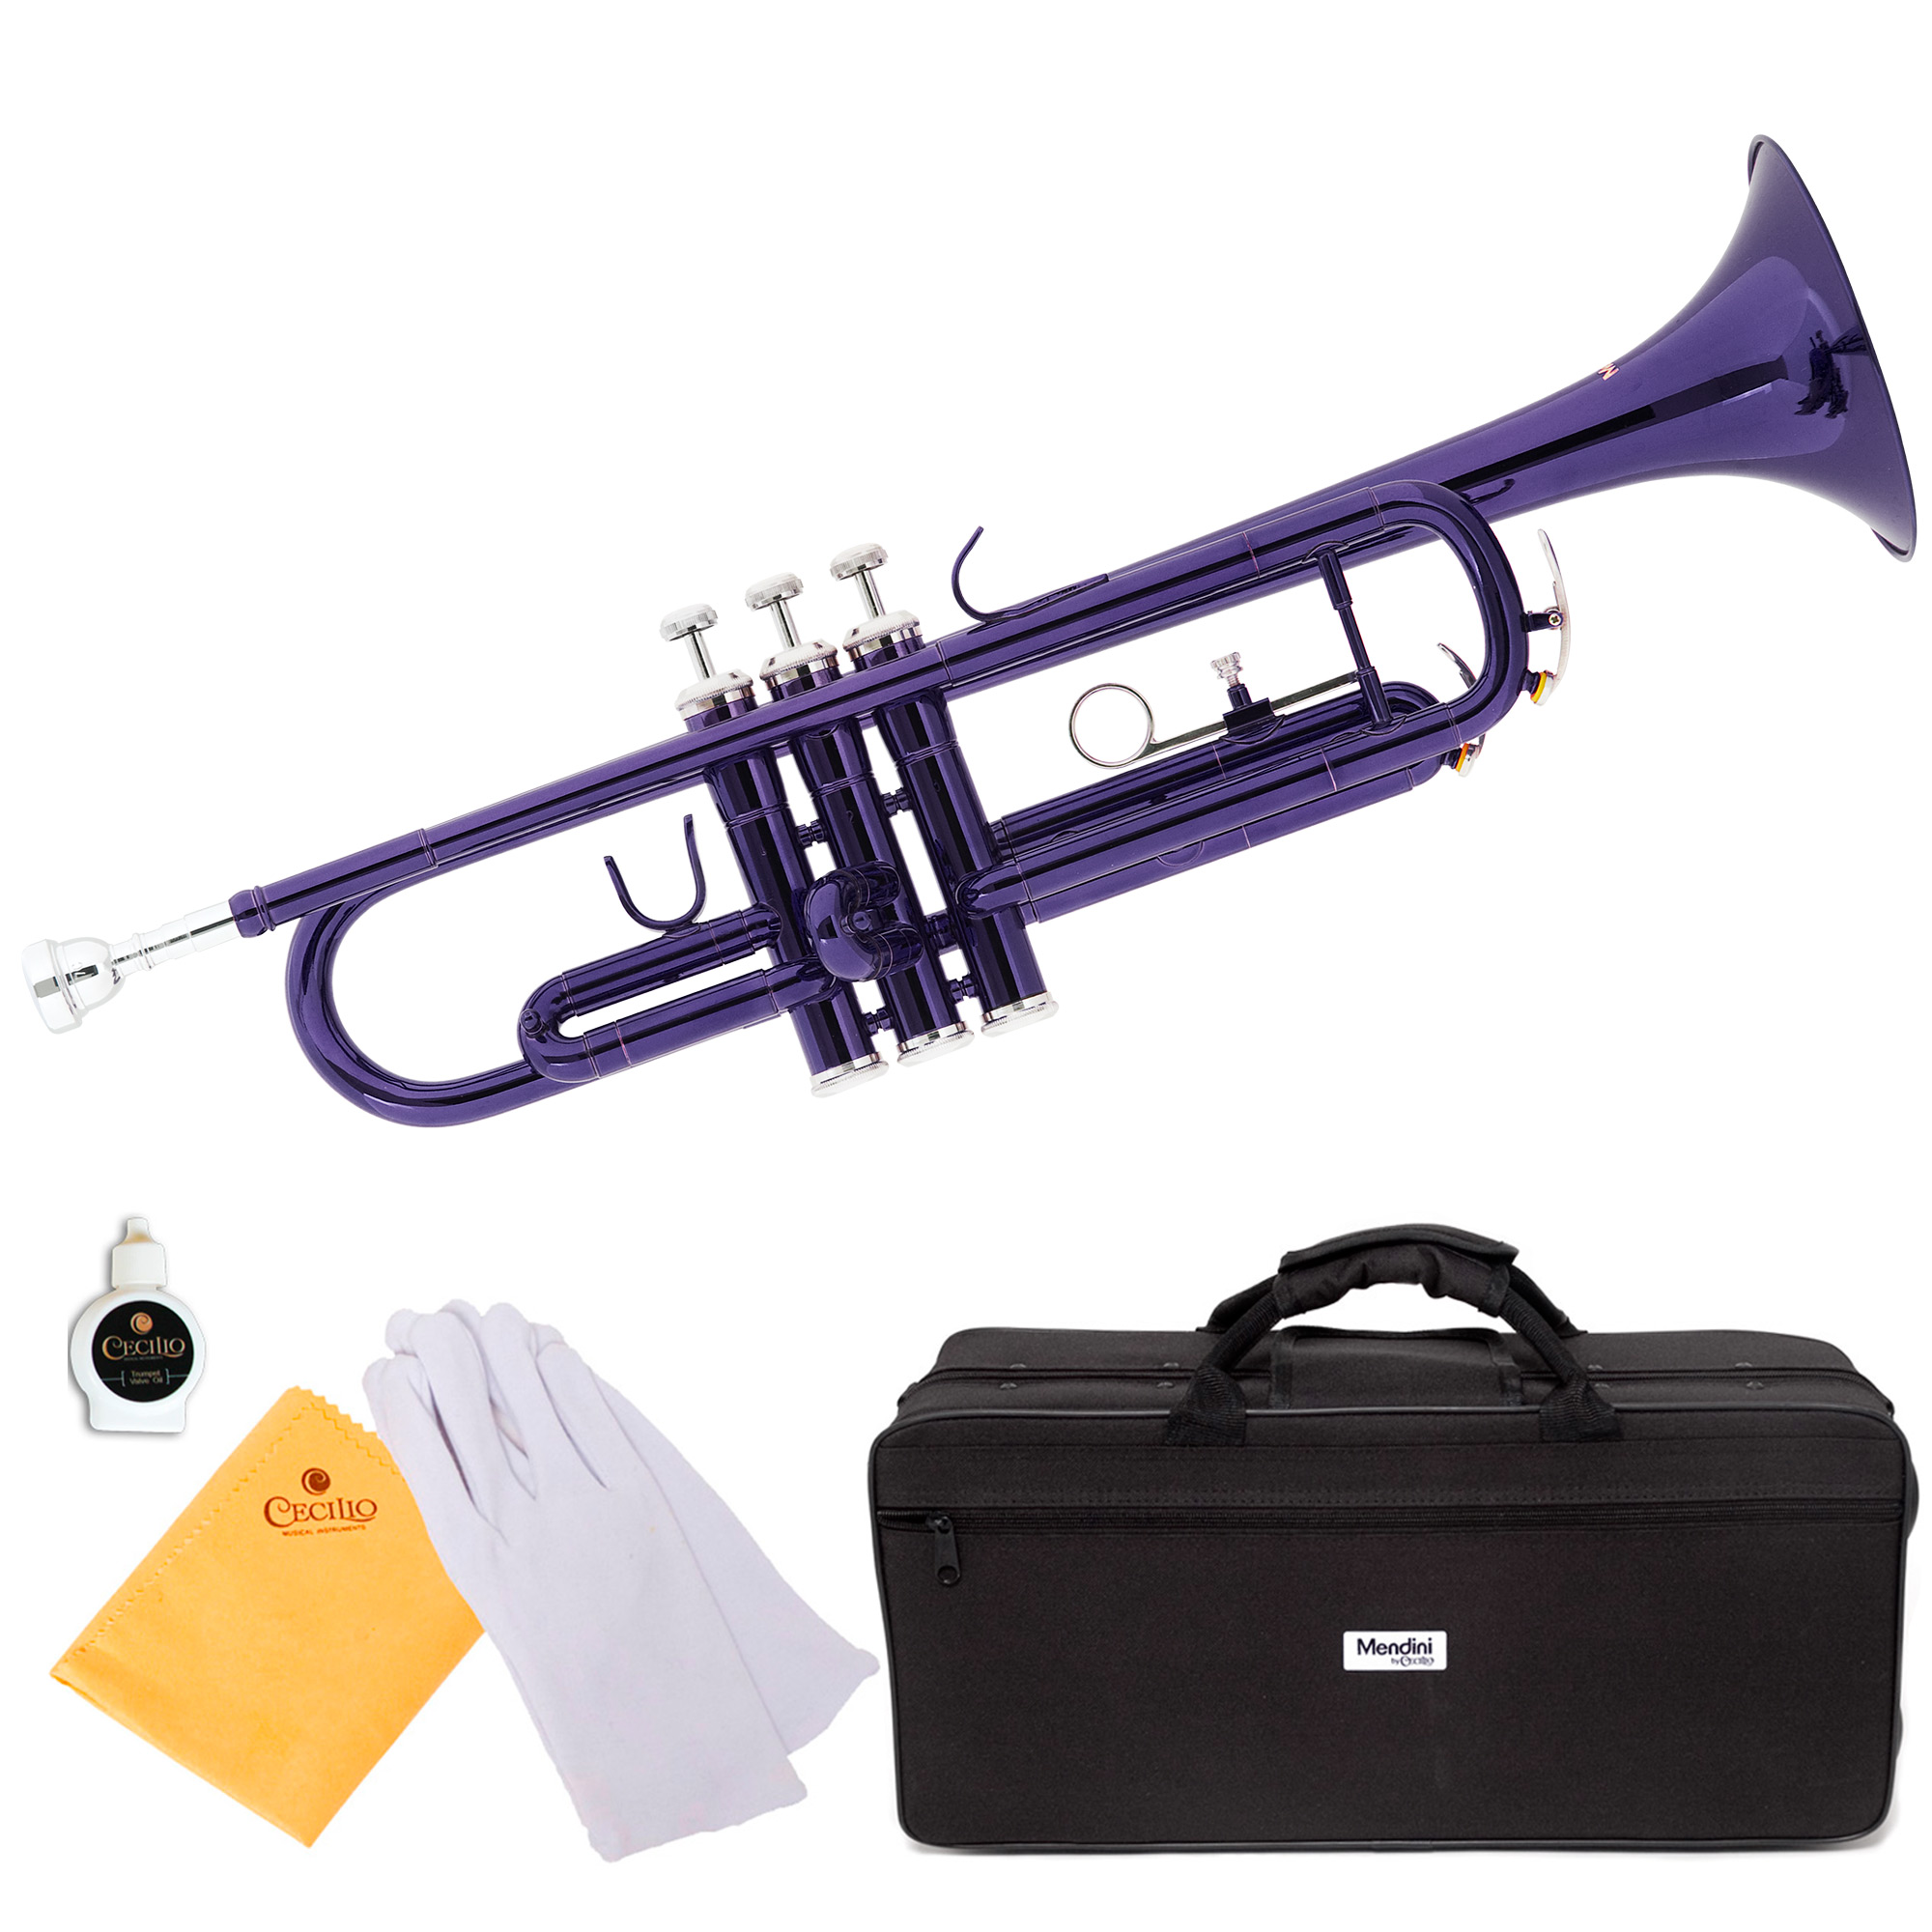 Mendini by Cecilio MTT-PL Purple Lacquer Brass Bb Trumpet with Durable Deluxe Case and 1 Year Warranty